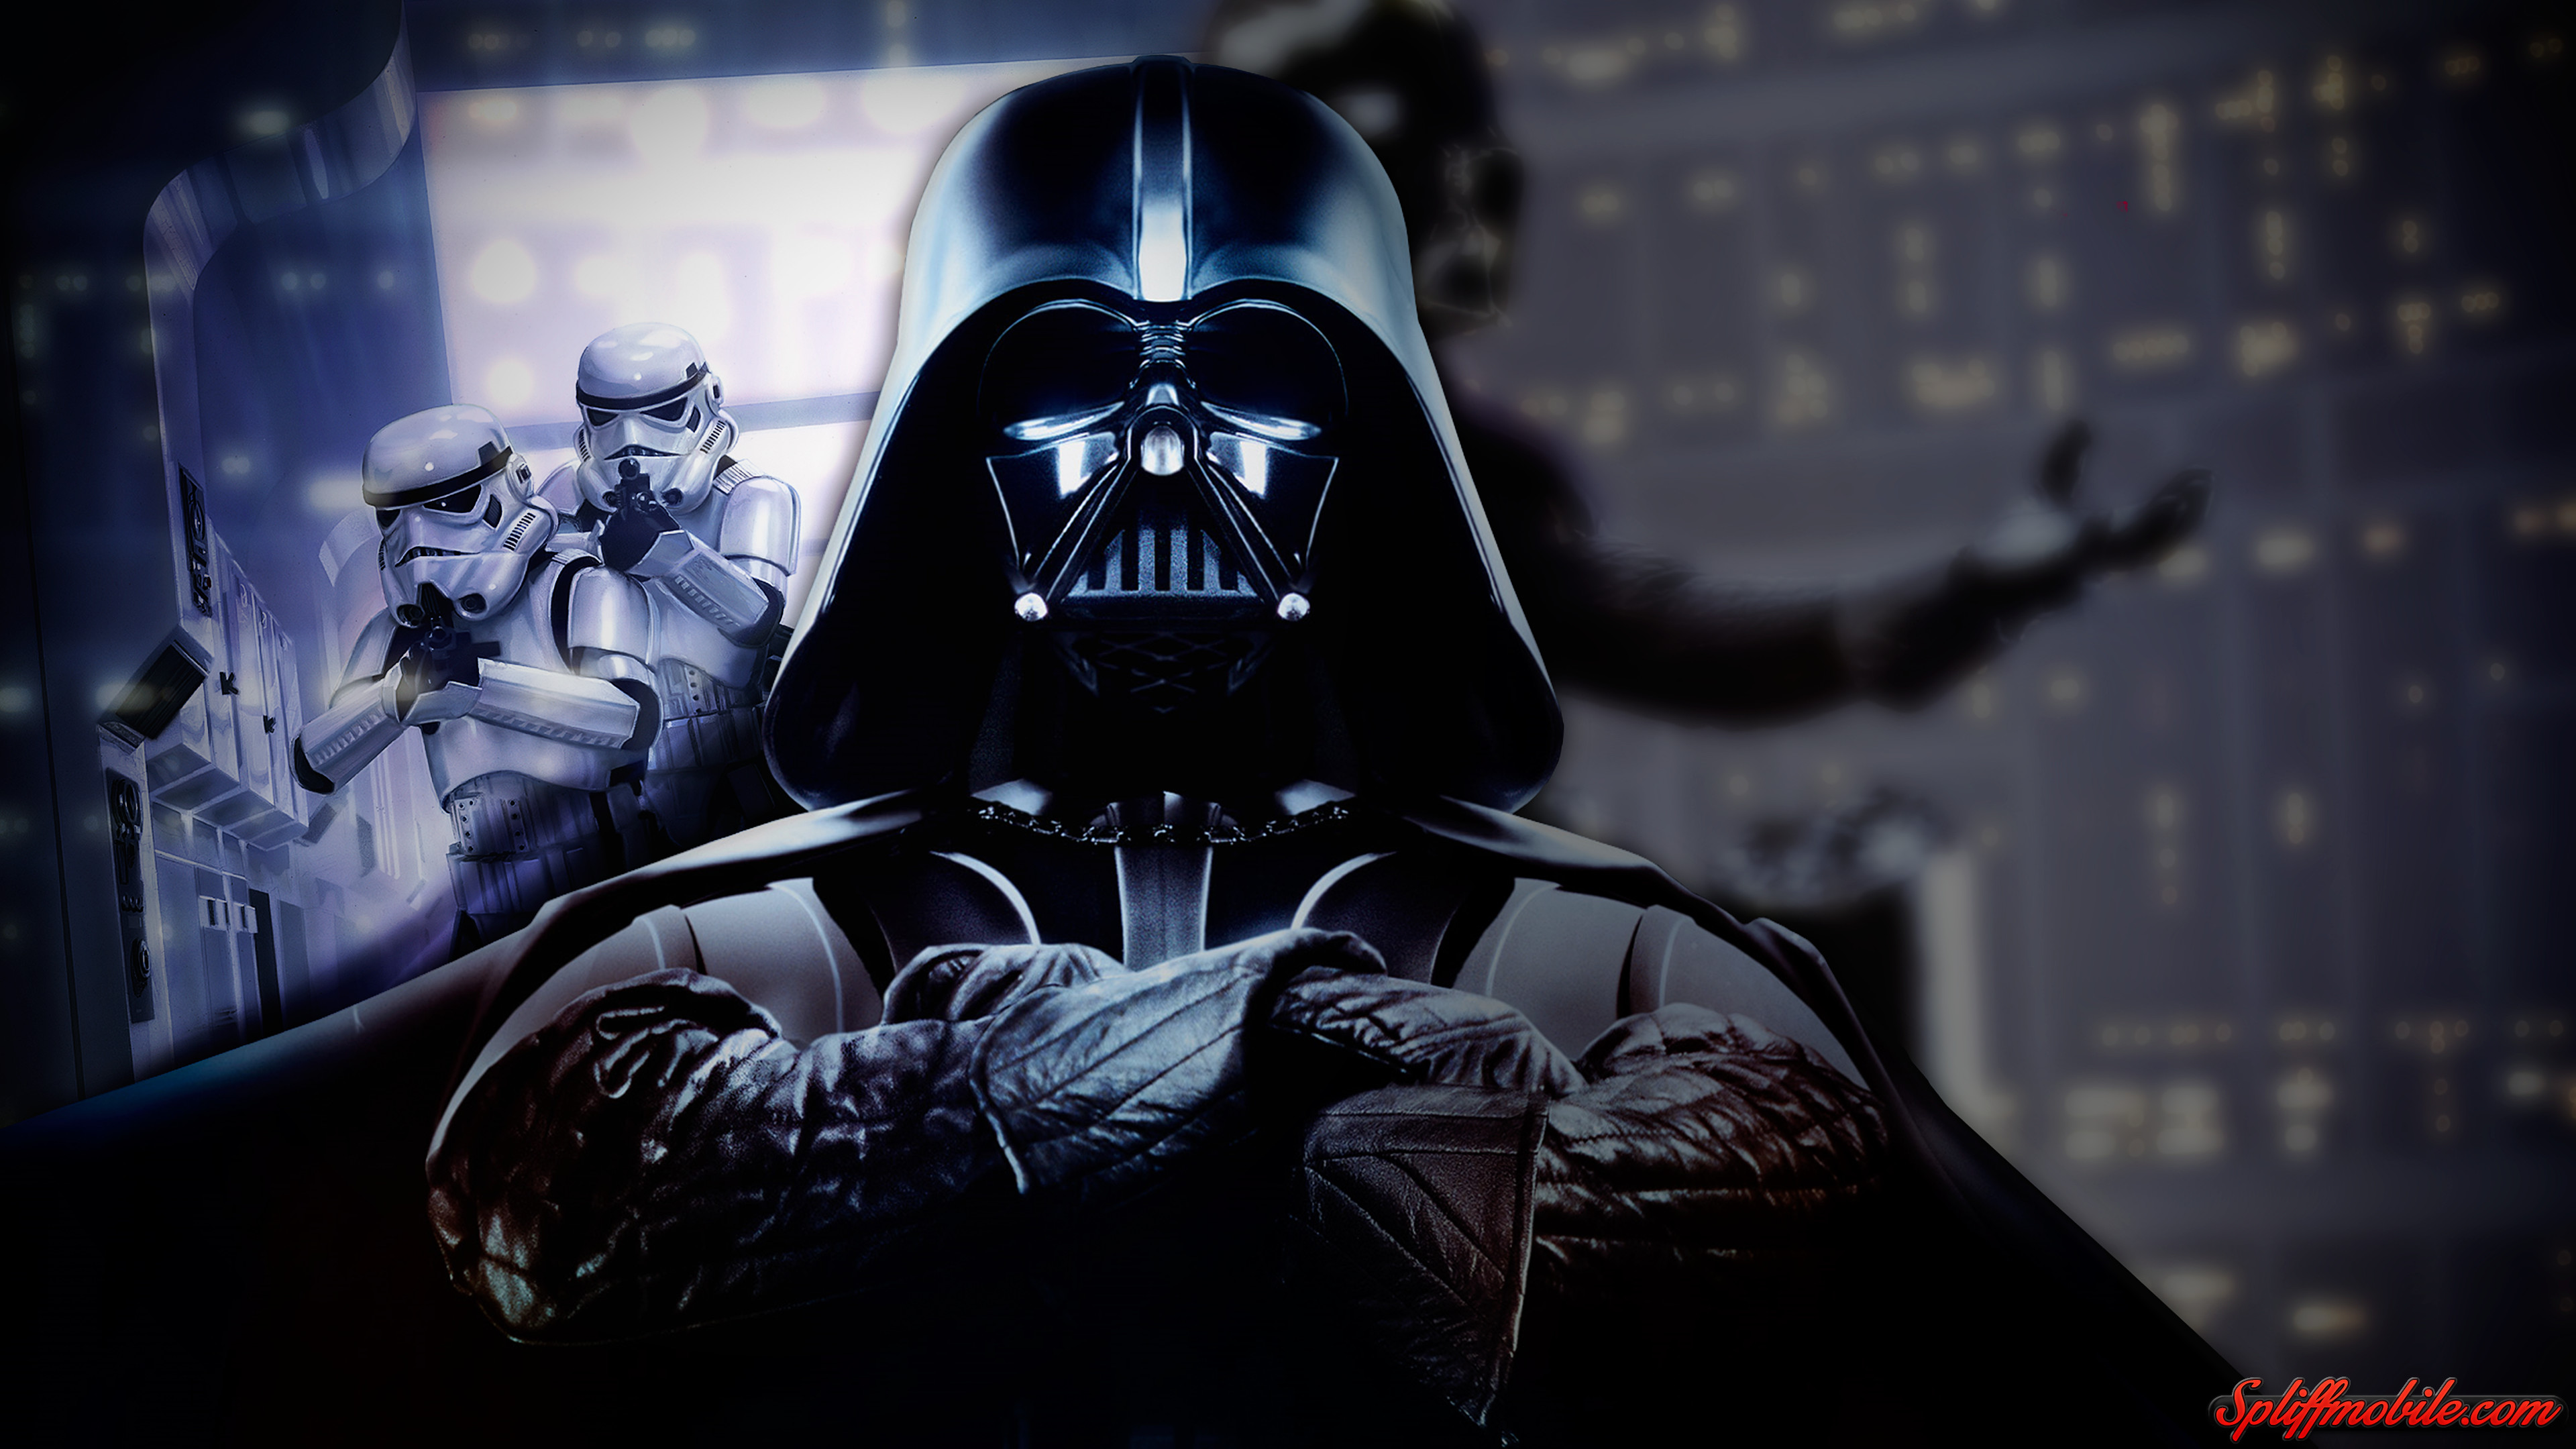 Darth Vader Wallpaper Iphone: Badass Wallpapers For Laptop (71+ Images